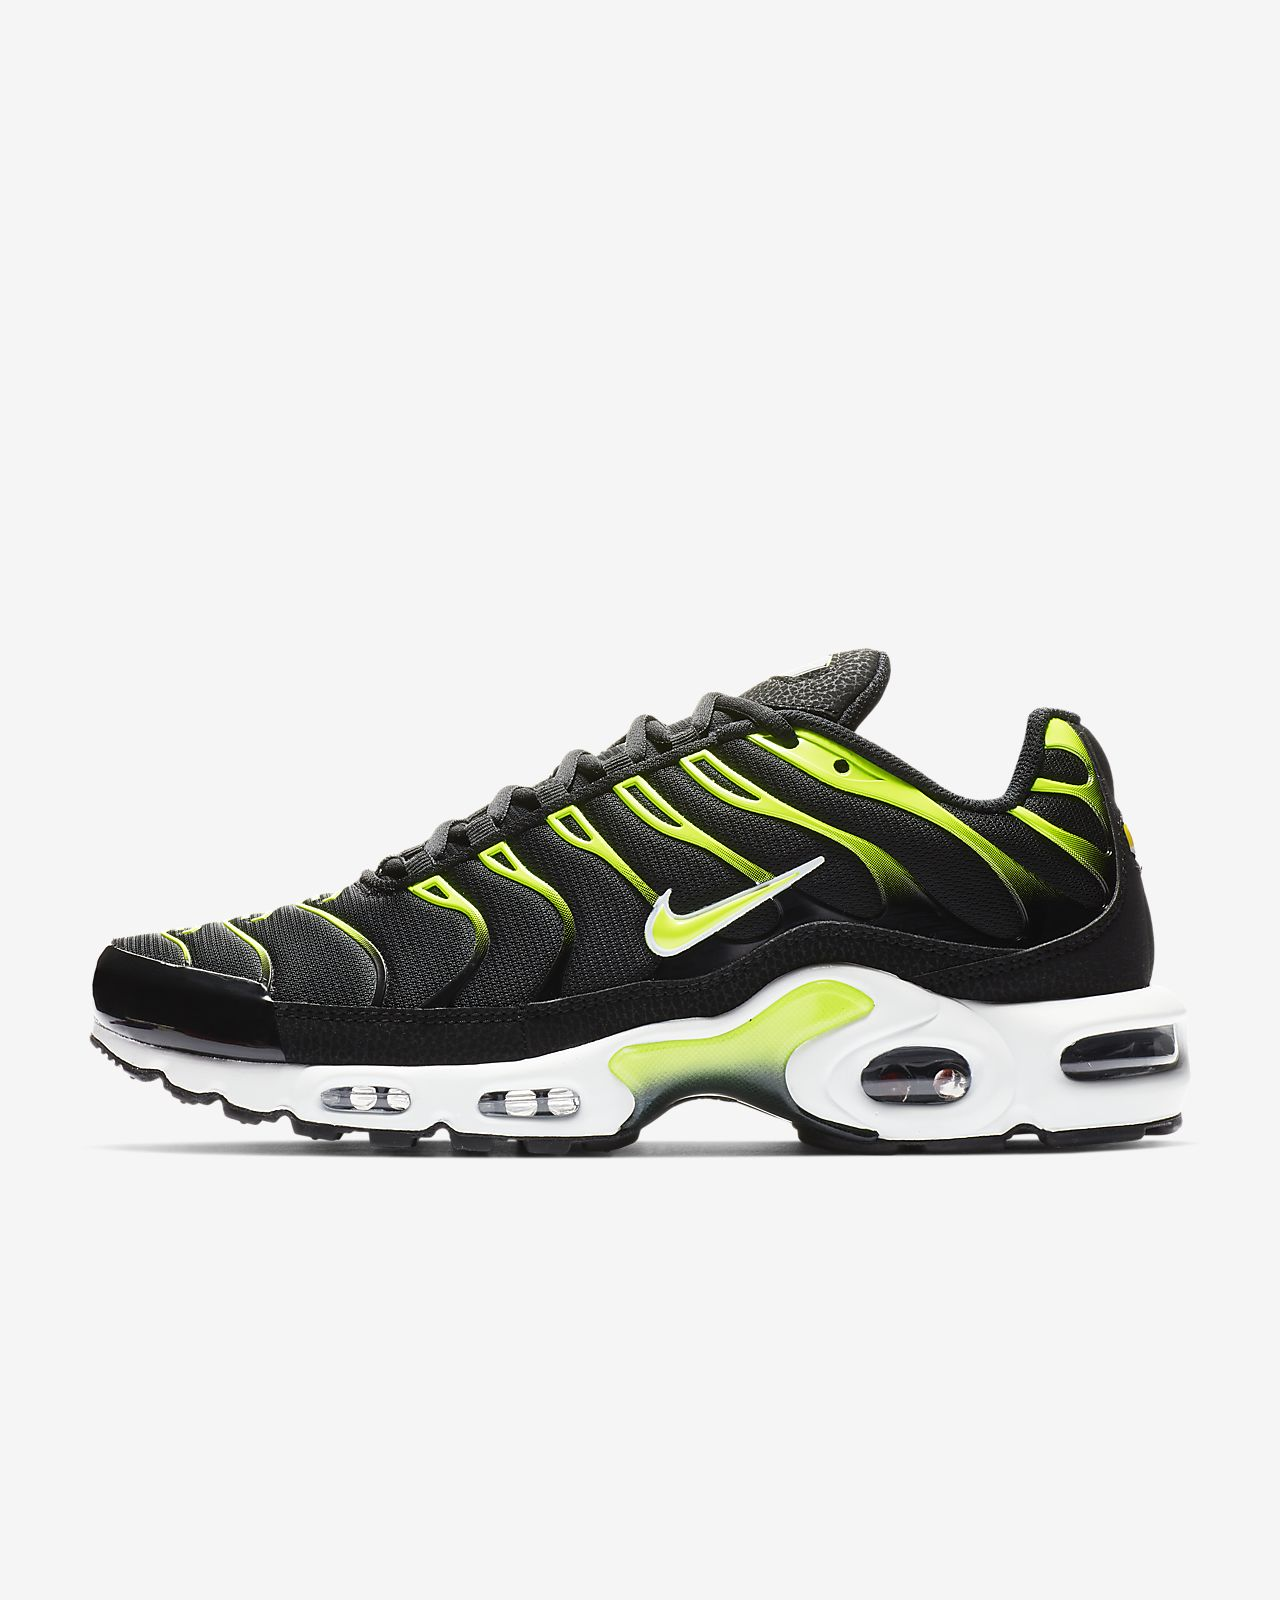 premium selection 37cf1 8b194 ... Sko Nike Air Max Plus för män